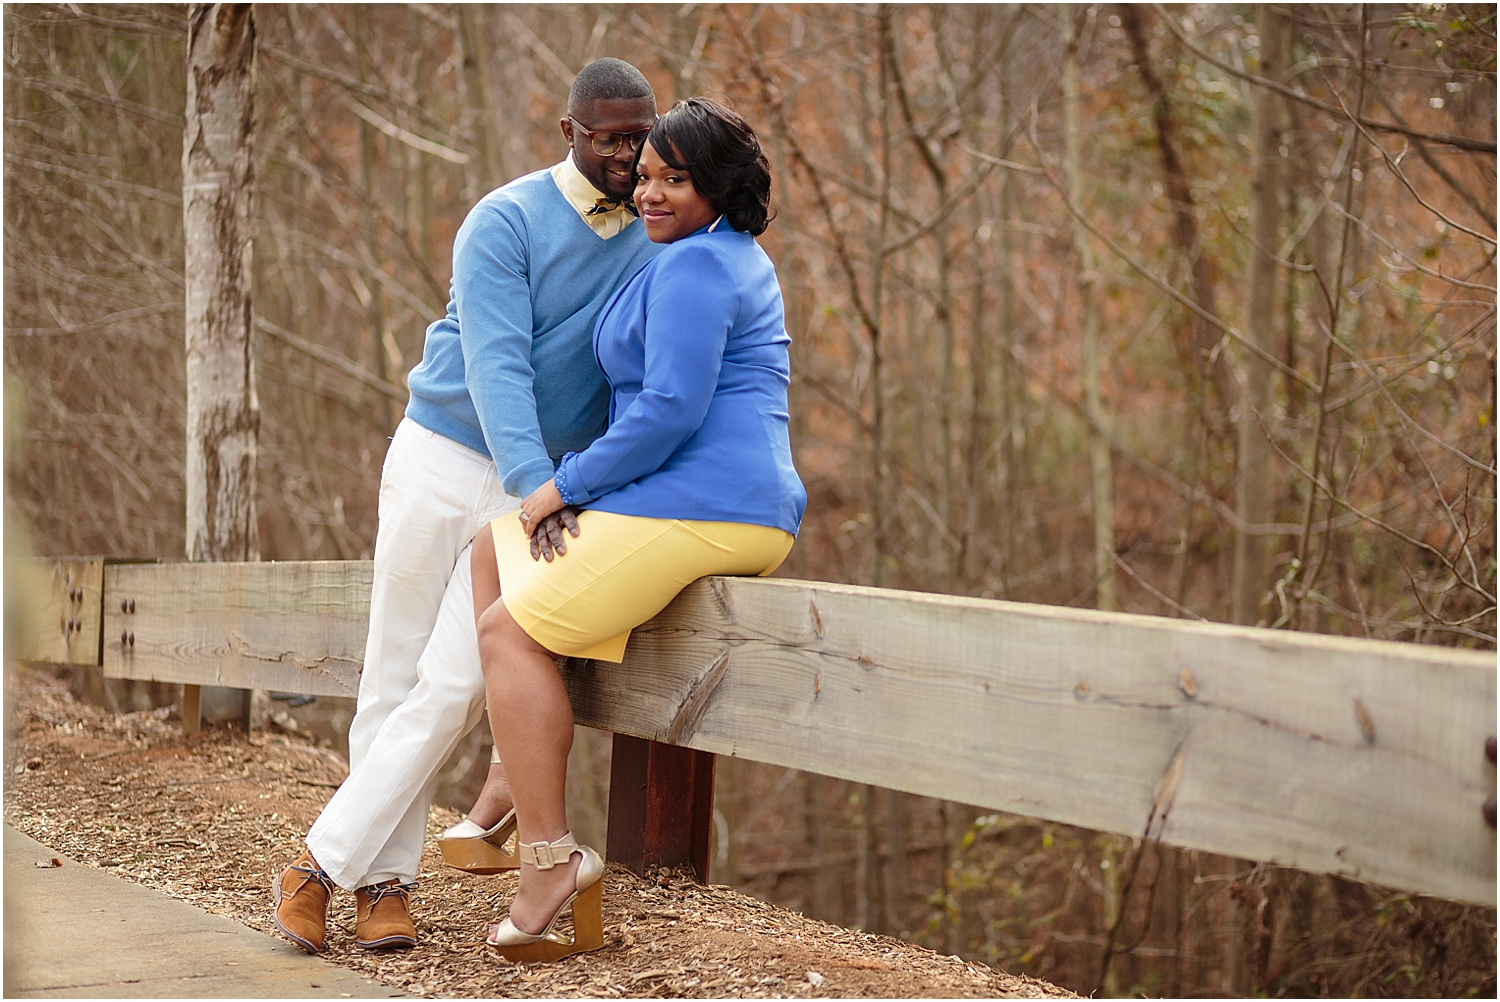 20150131-engagement-outdoor-winter-greenville-12_blog.jpg